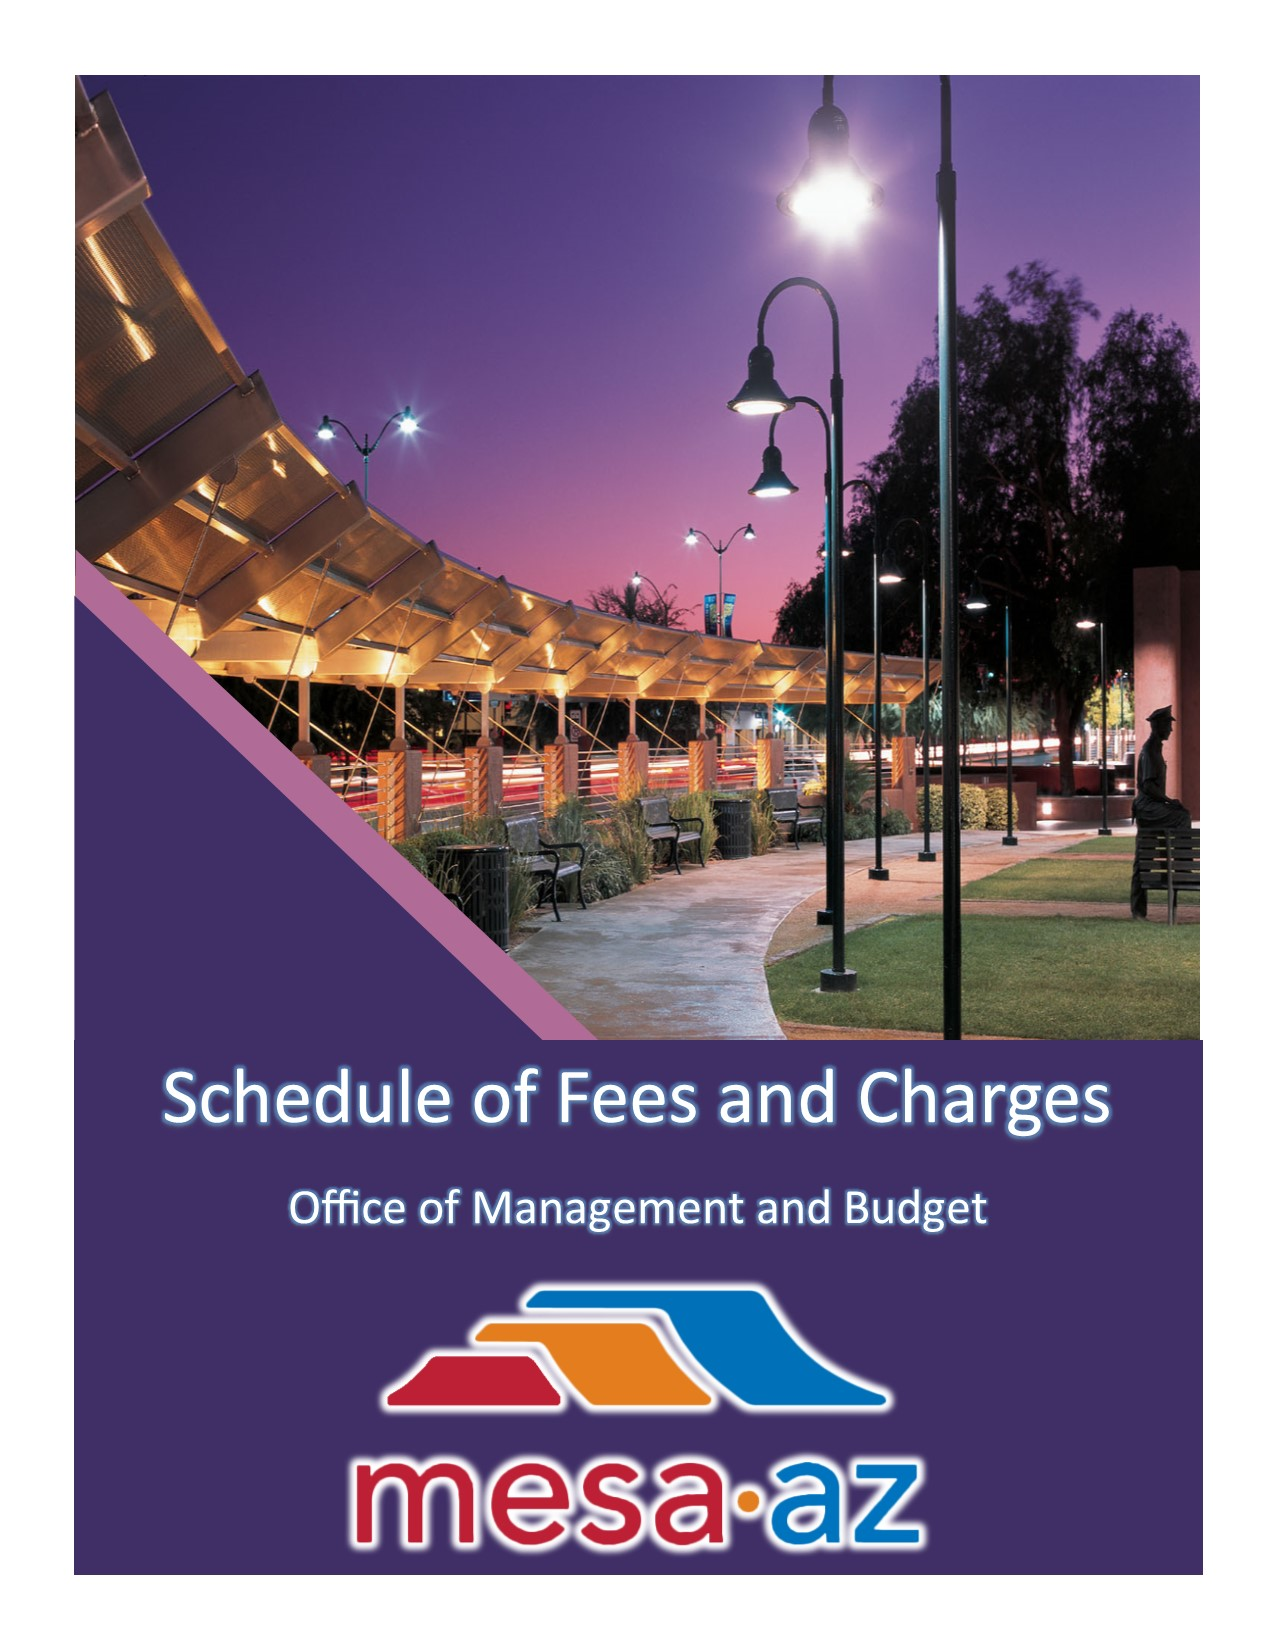 Schedule of Fees and Charges